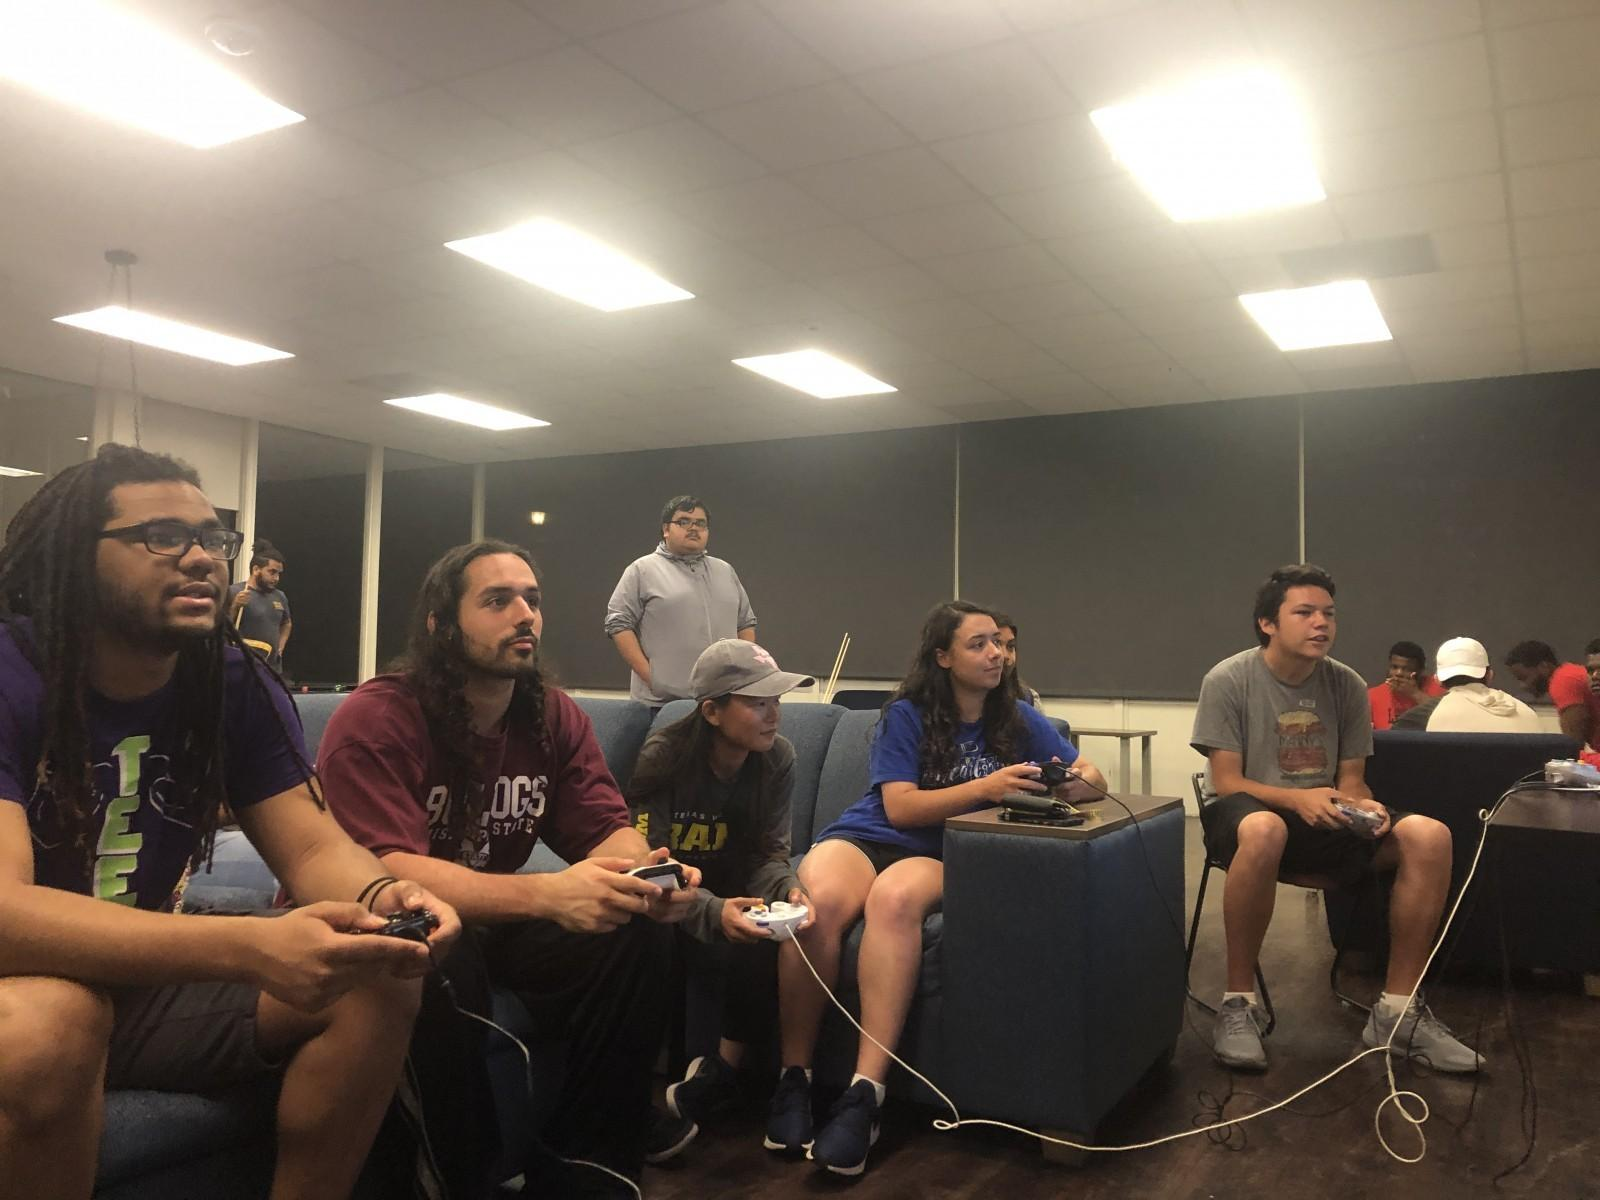 Students compete during game night